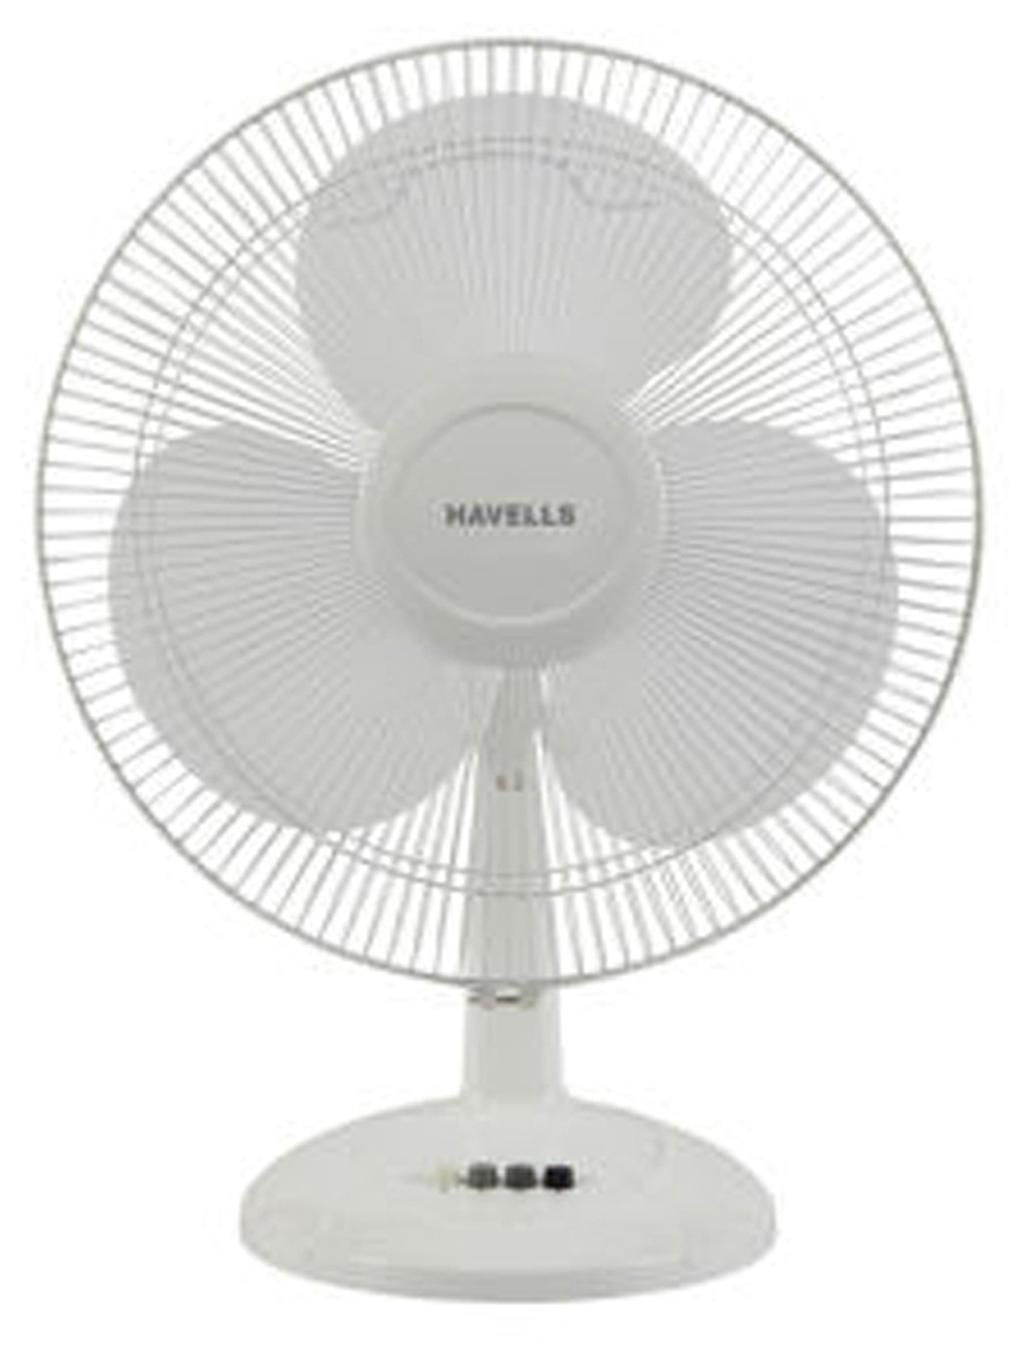 Havells Swing LX 400 MM Table Fan (White)